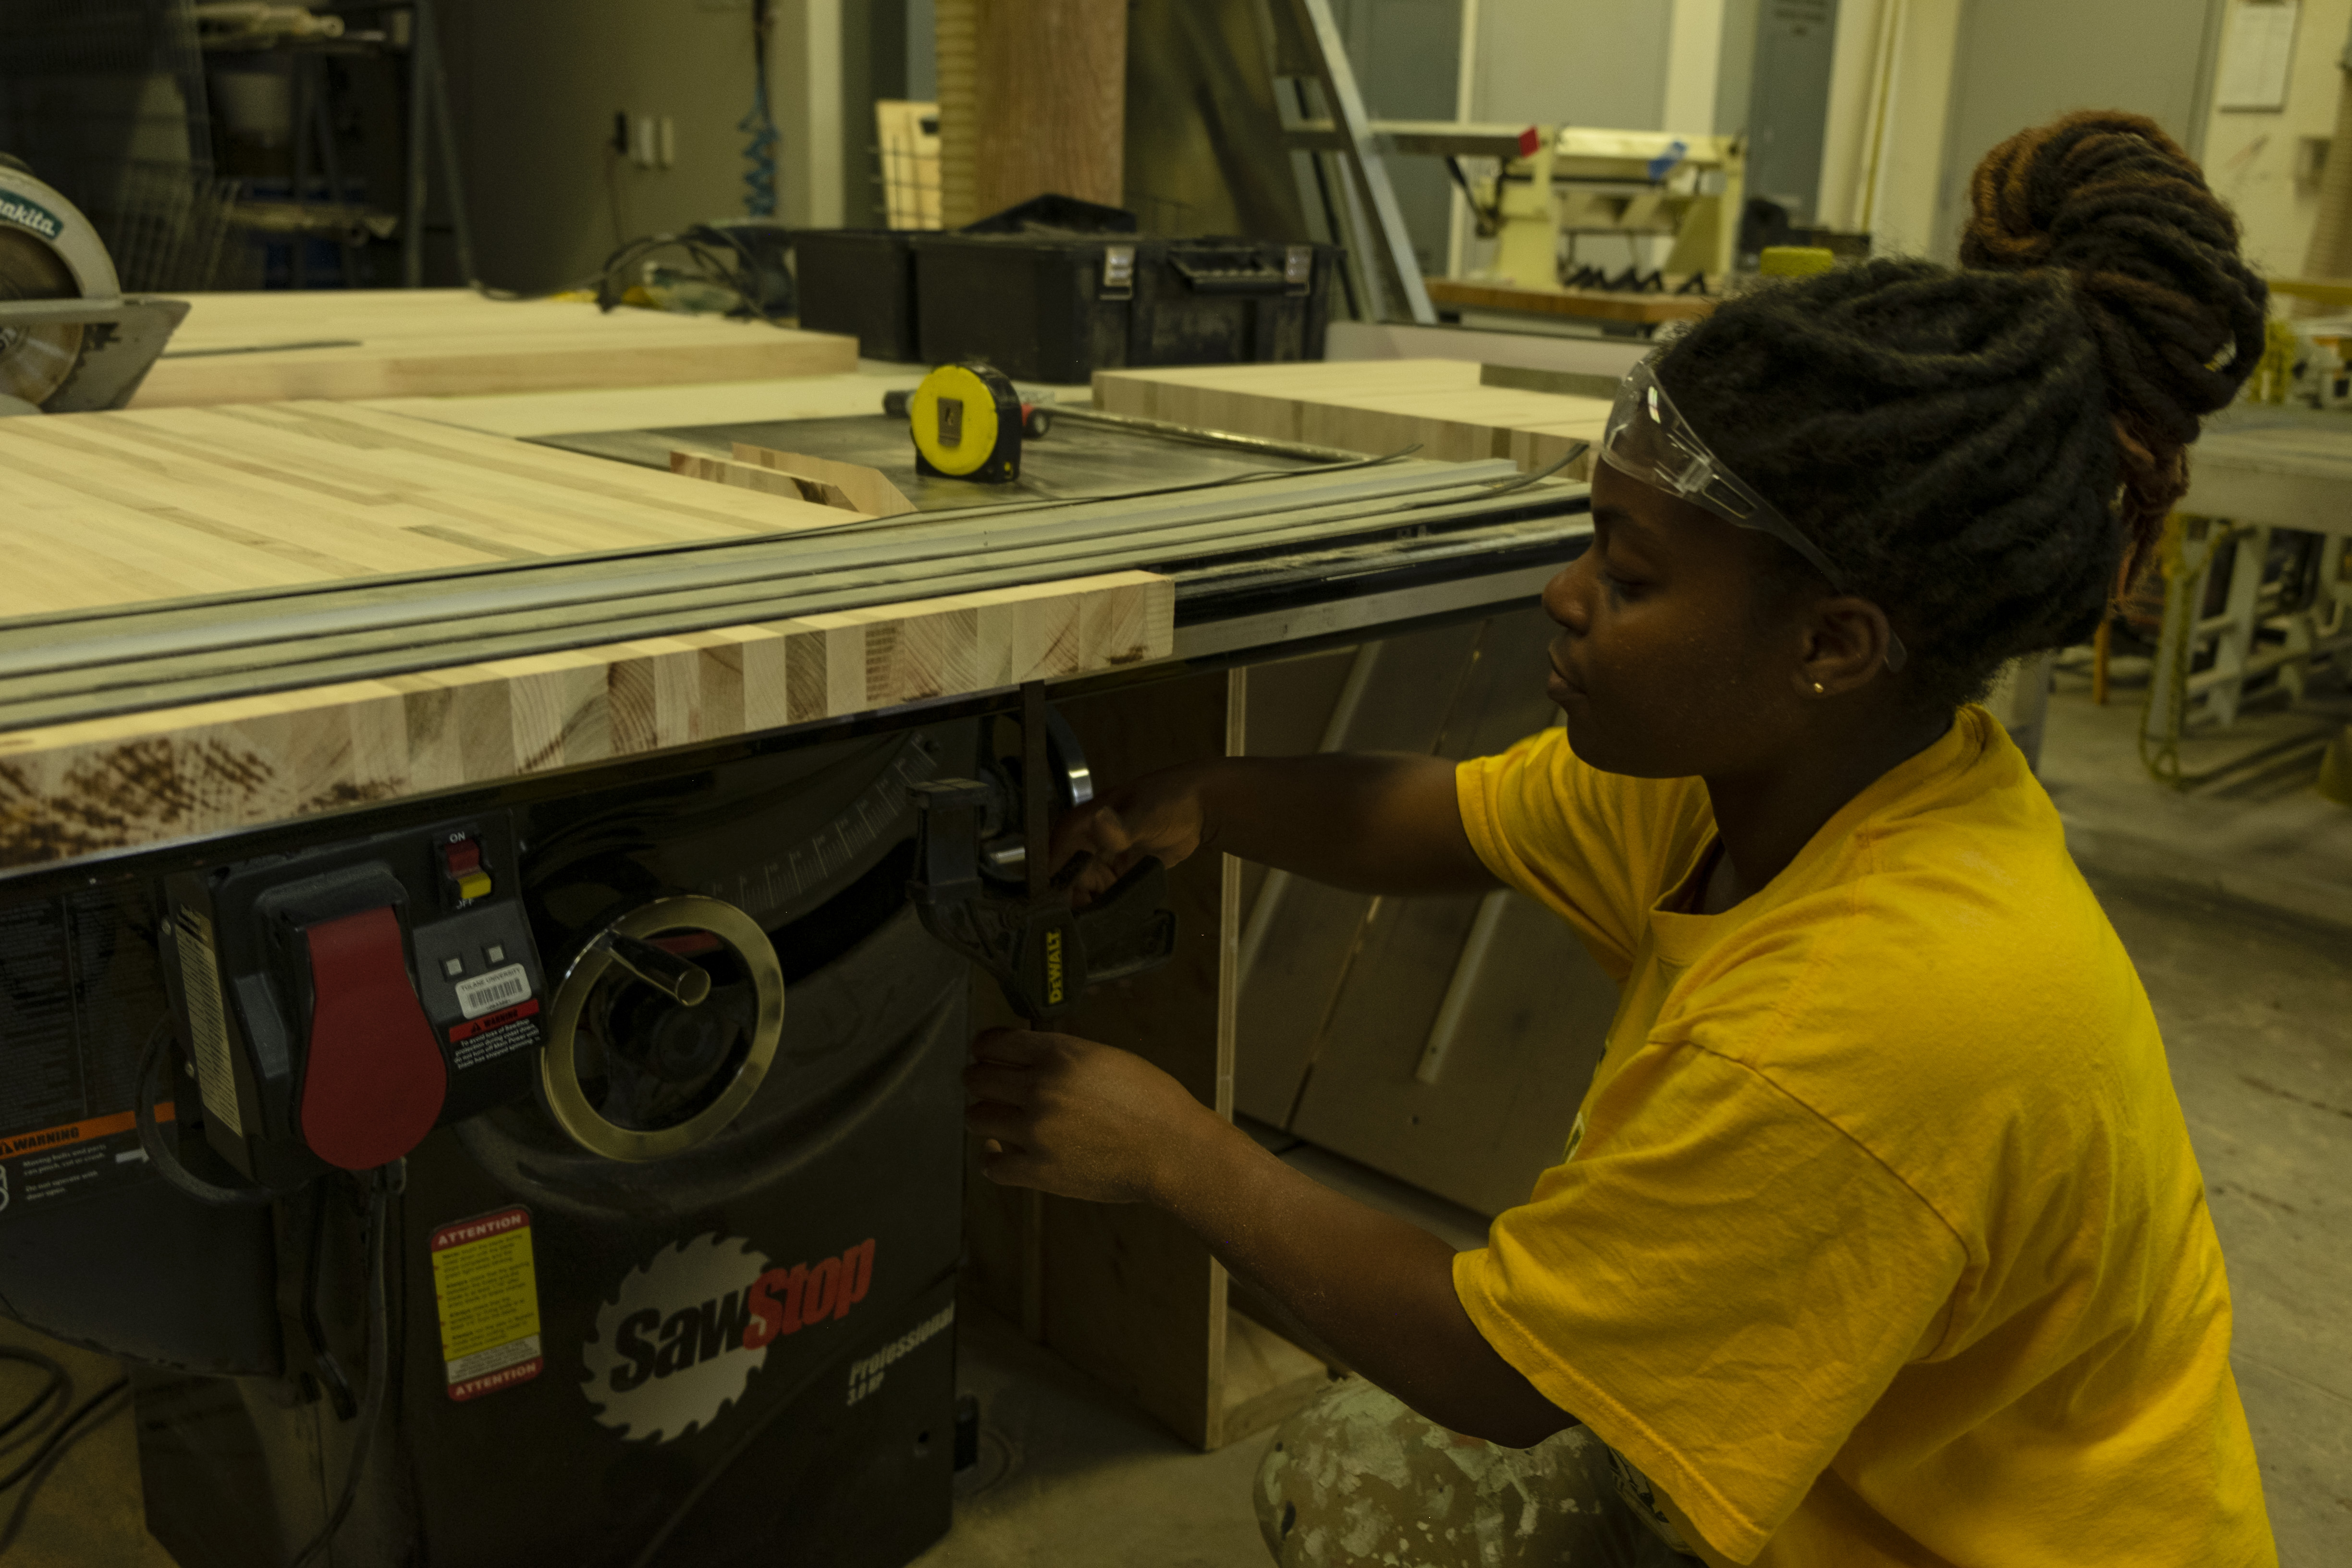 Student in safety googles kneels down at a work table to set up a sawstop.